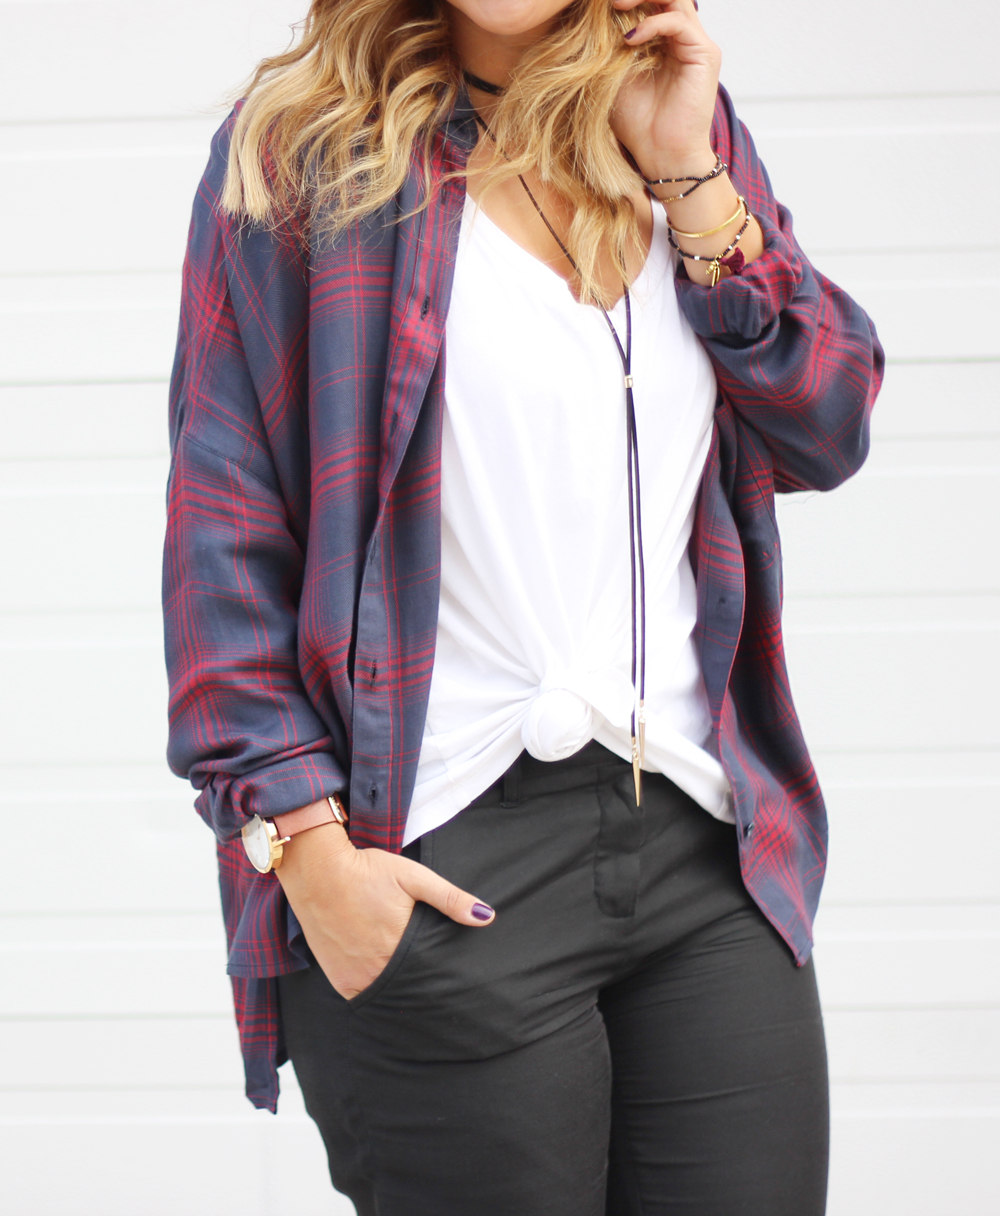 Long choker necklace, oversized plaid flannel shirt and a tied tank top